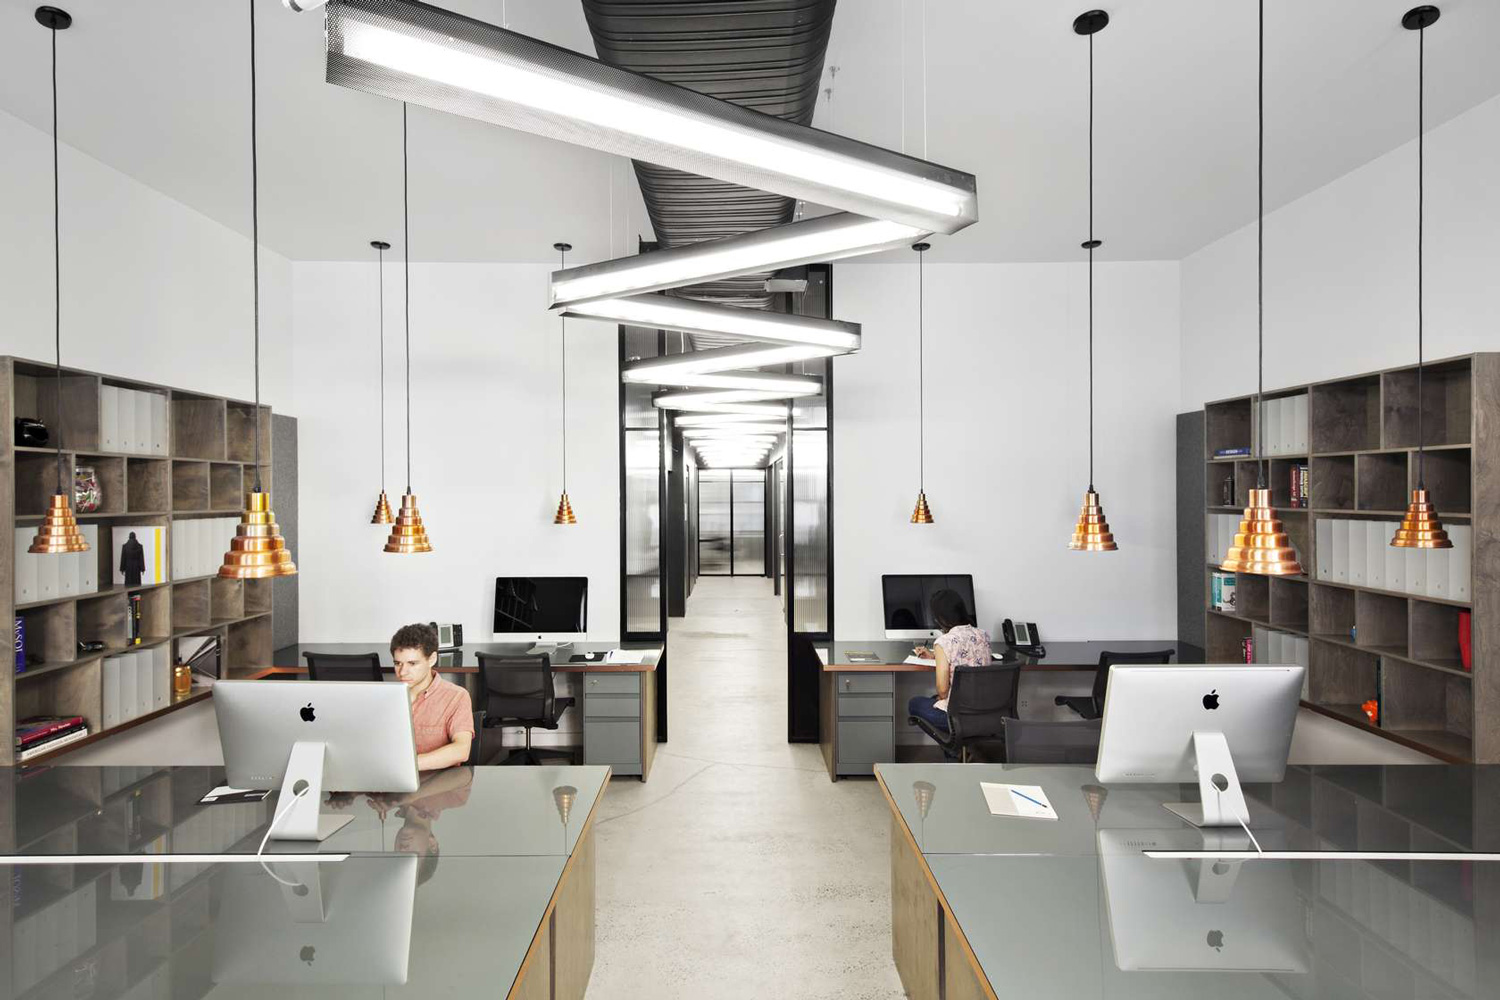 Nyc firehouse transformed into a hq by rafael de cardenas.